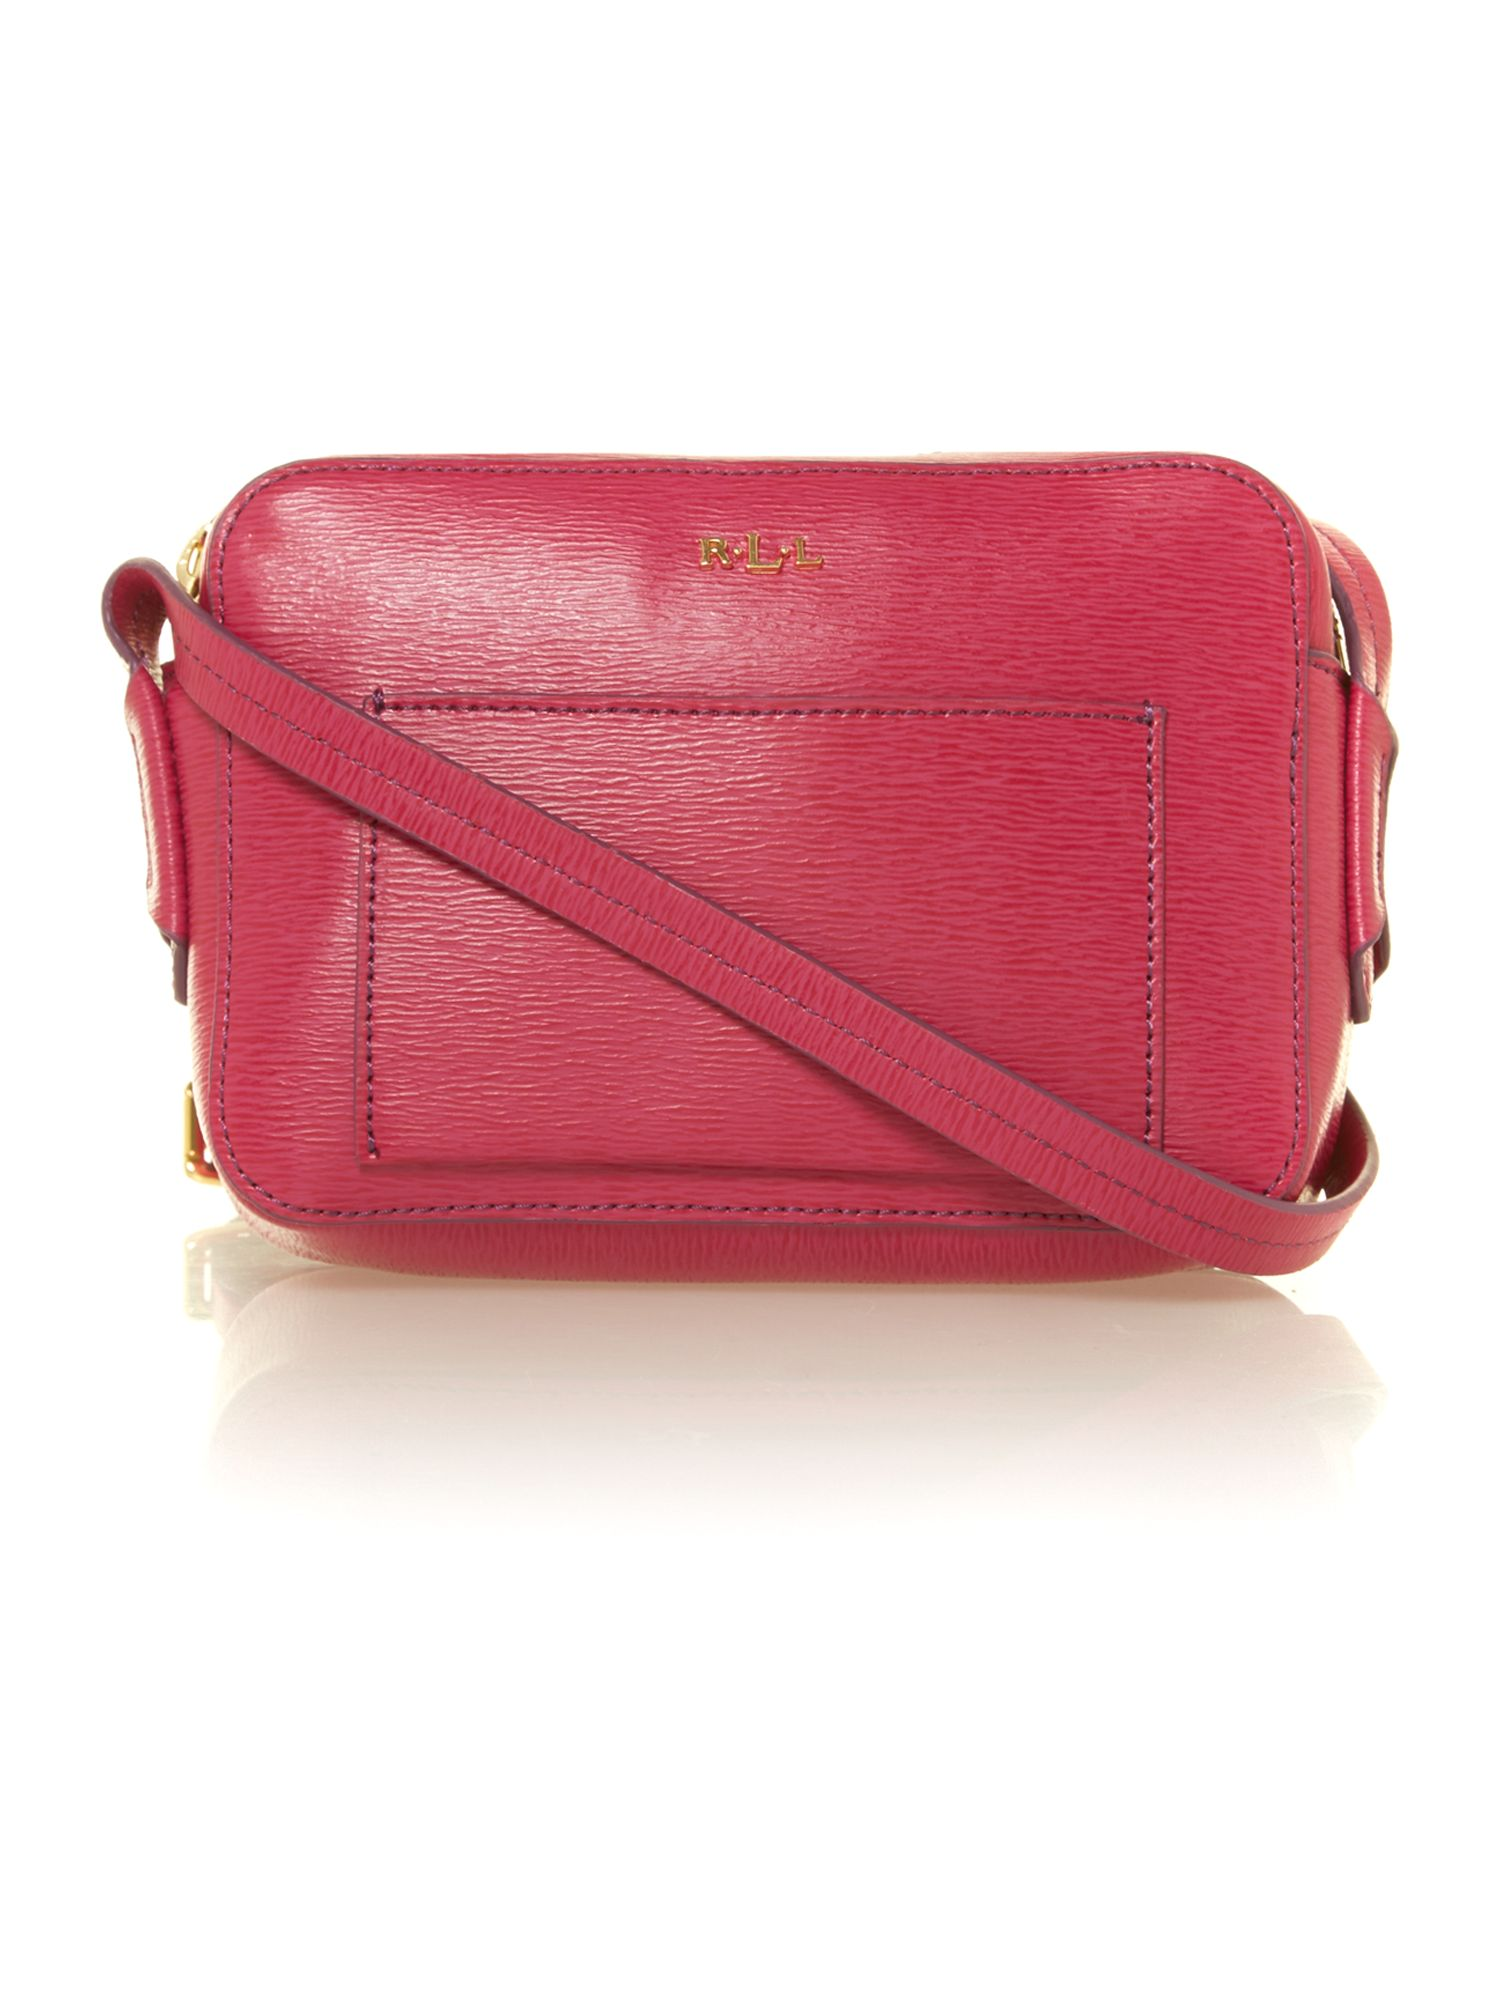 Tate pink mini crossbody bag